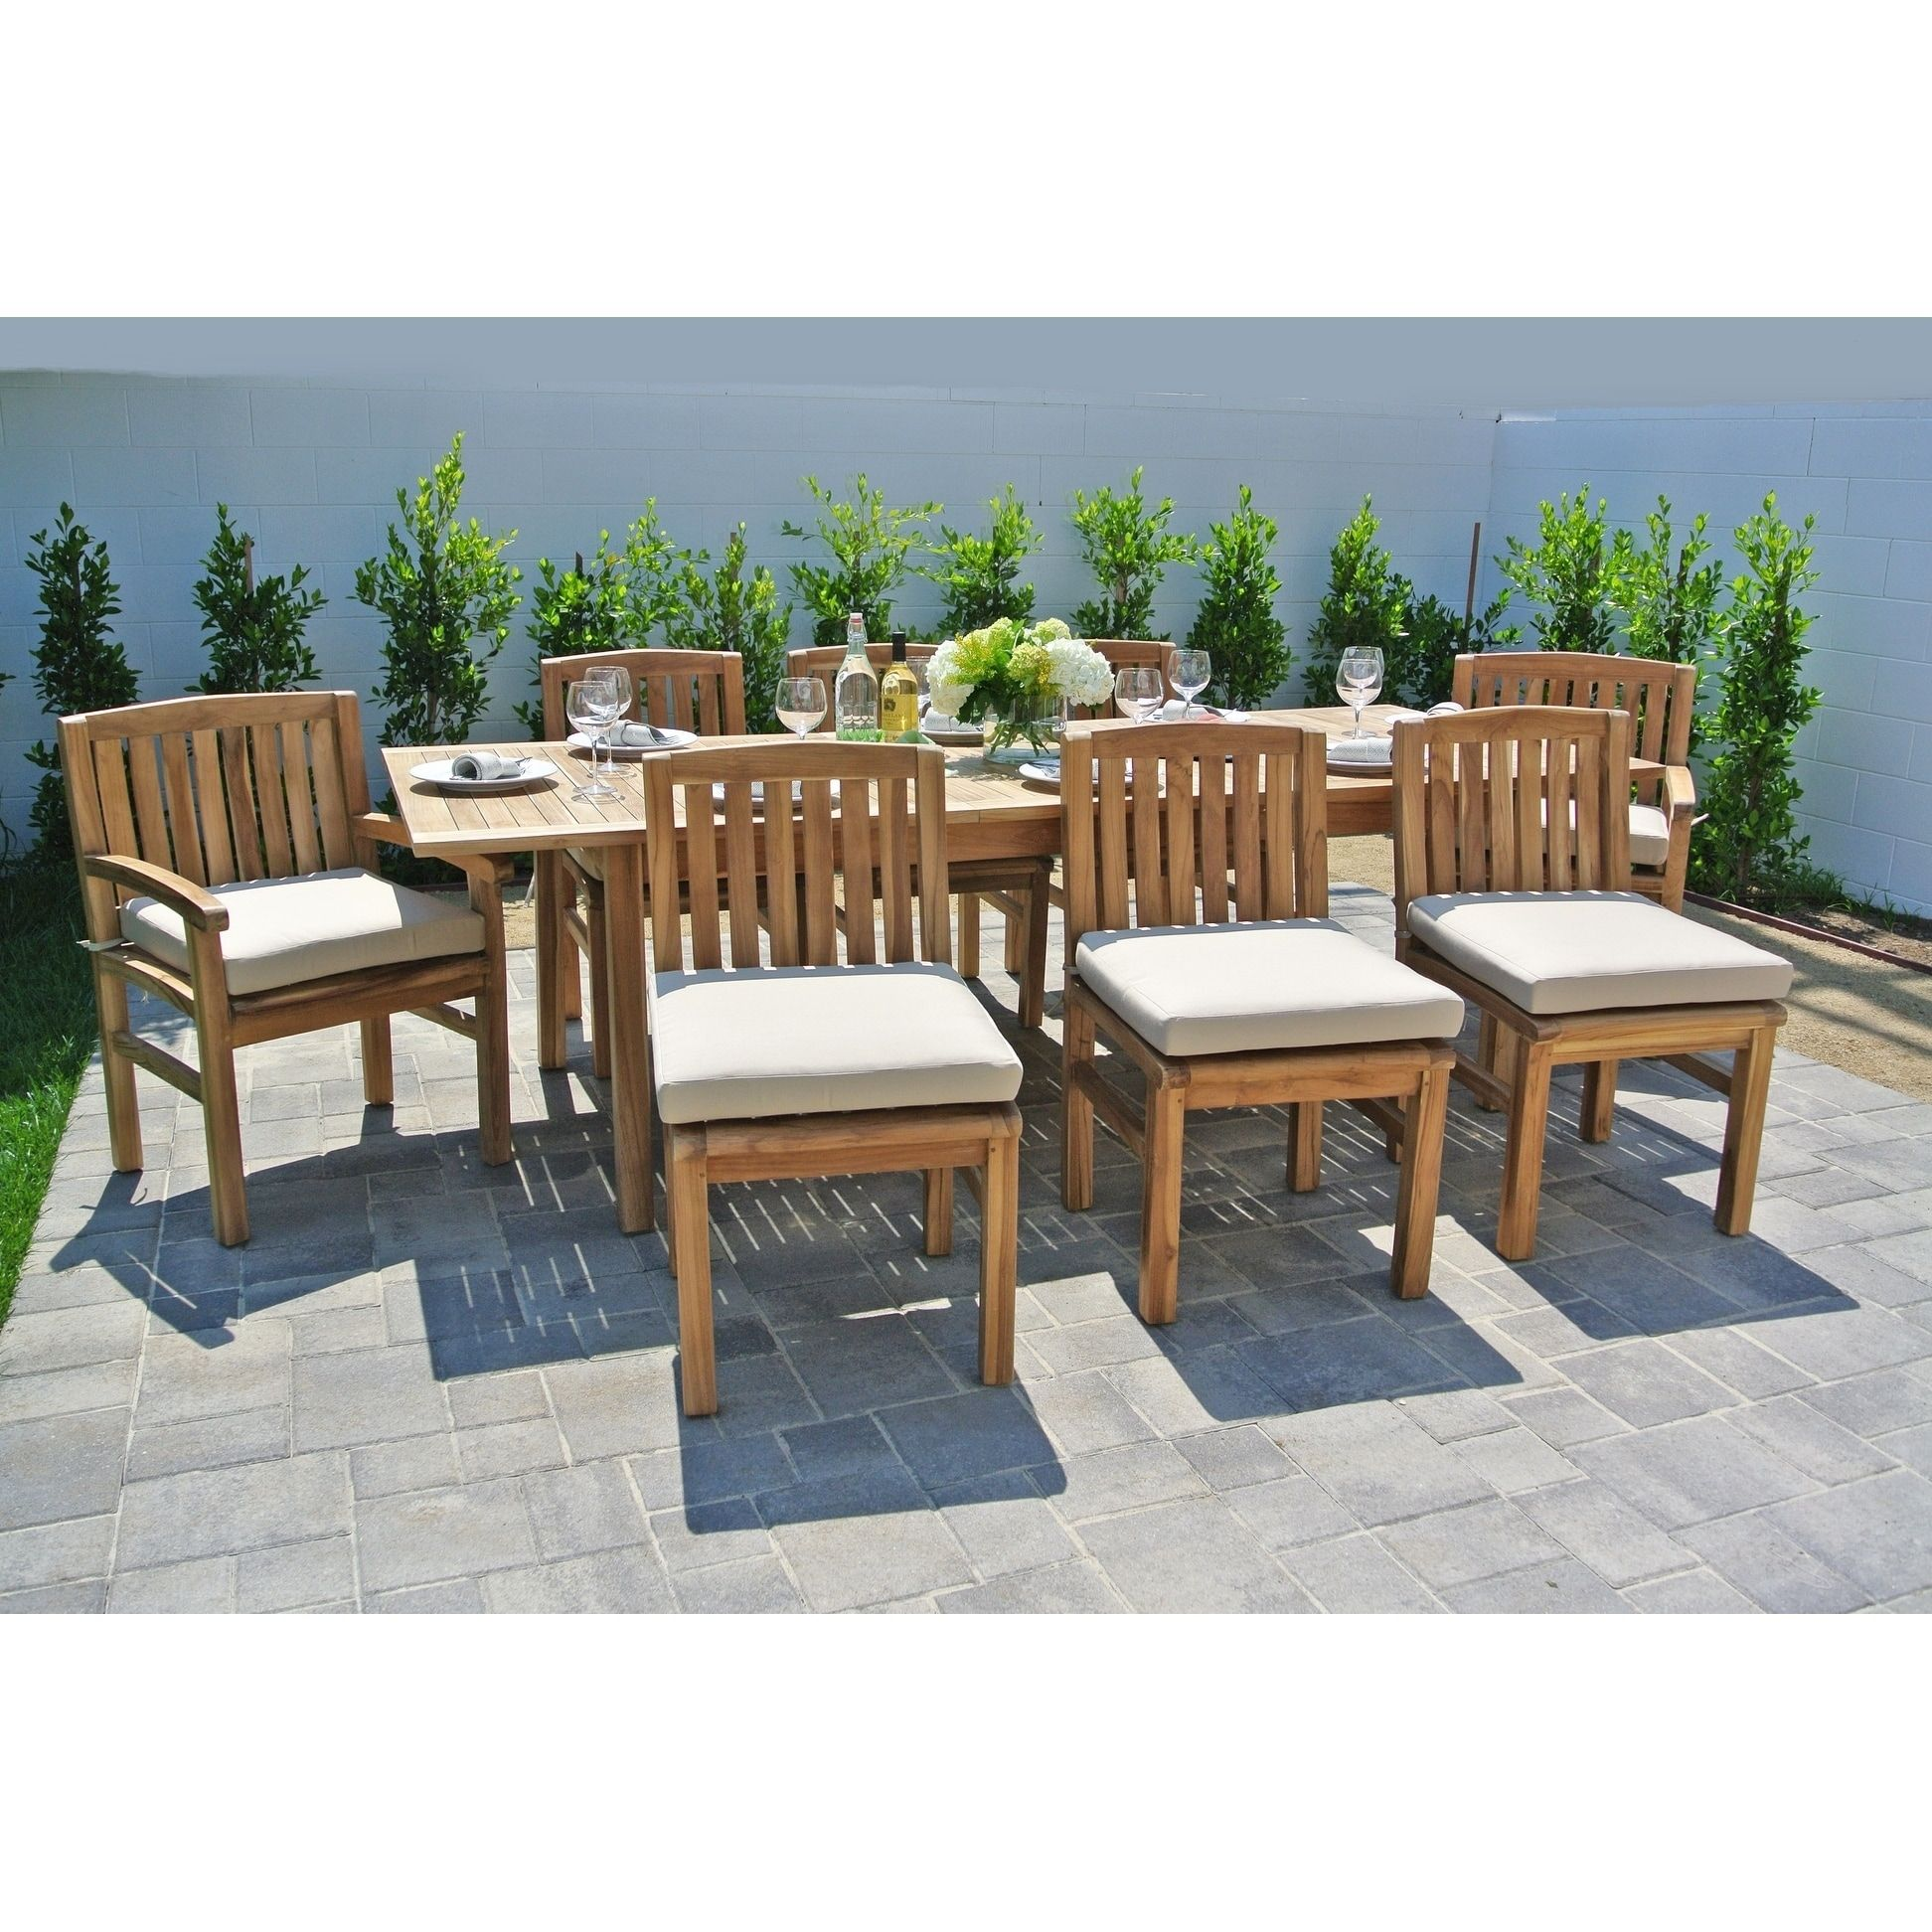 9 Pc Huntington Teak Outdoor Patio Furniture Dining Set With Expansion Table.  Sunbrella Cushion. (Alpine White), Size 9 Piece Sets